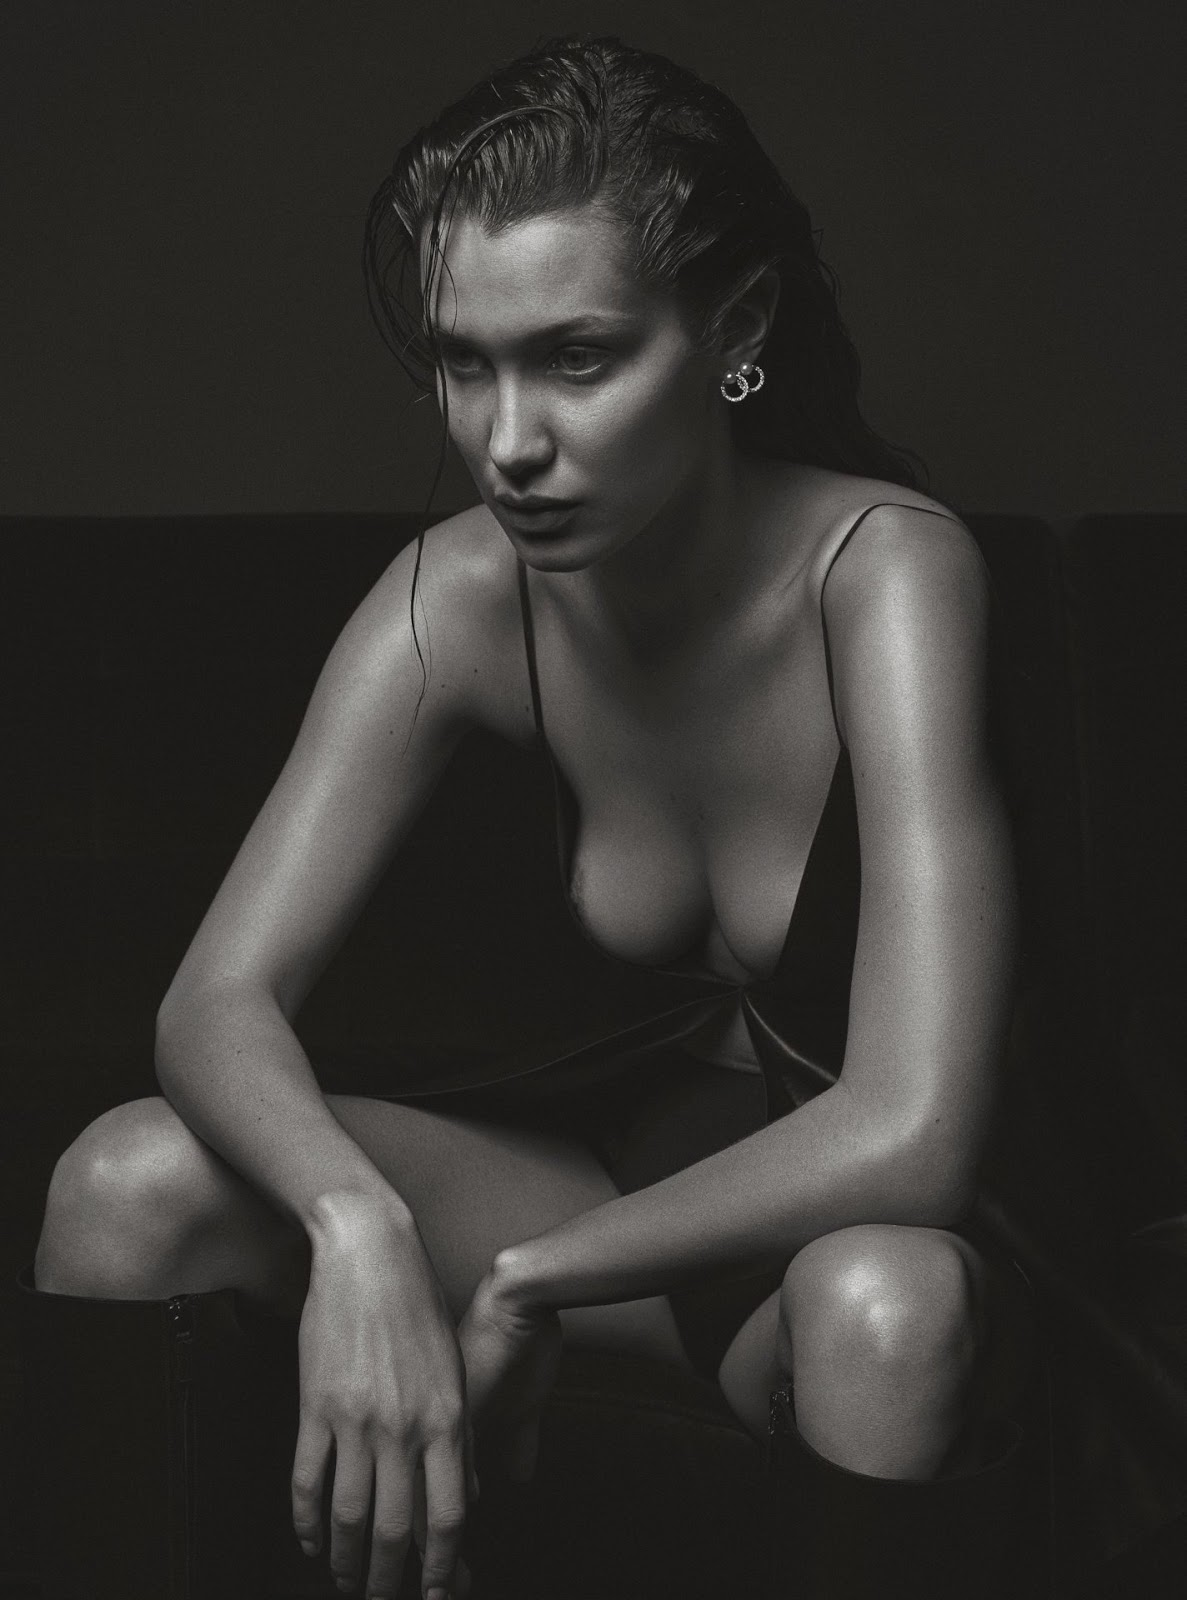 Bella Hadid naked for V Magazine photoshoot